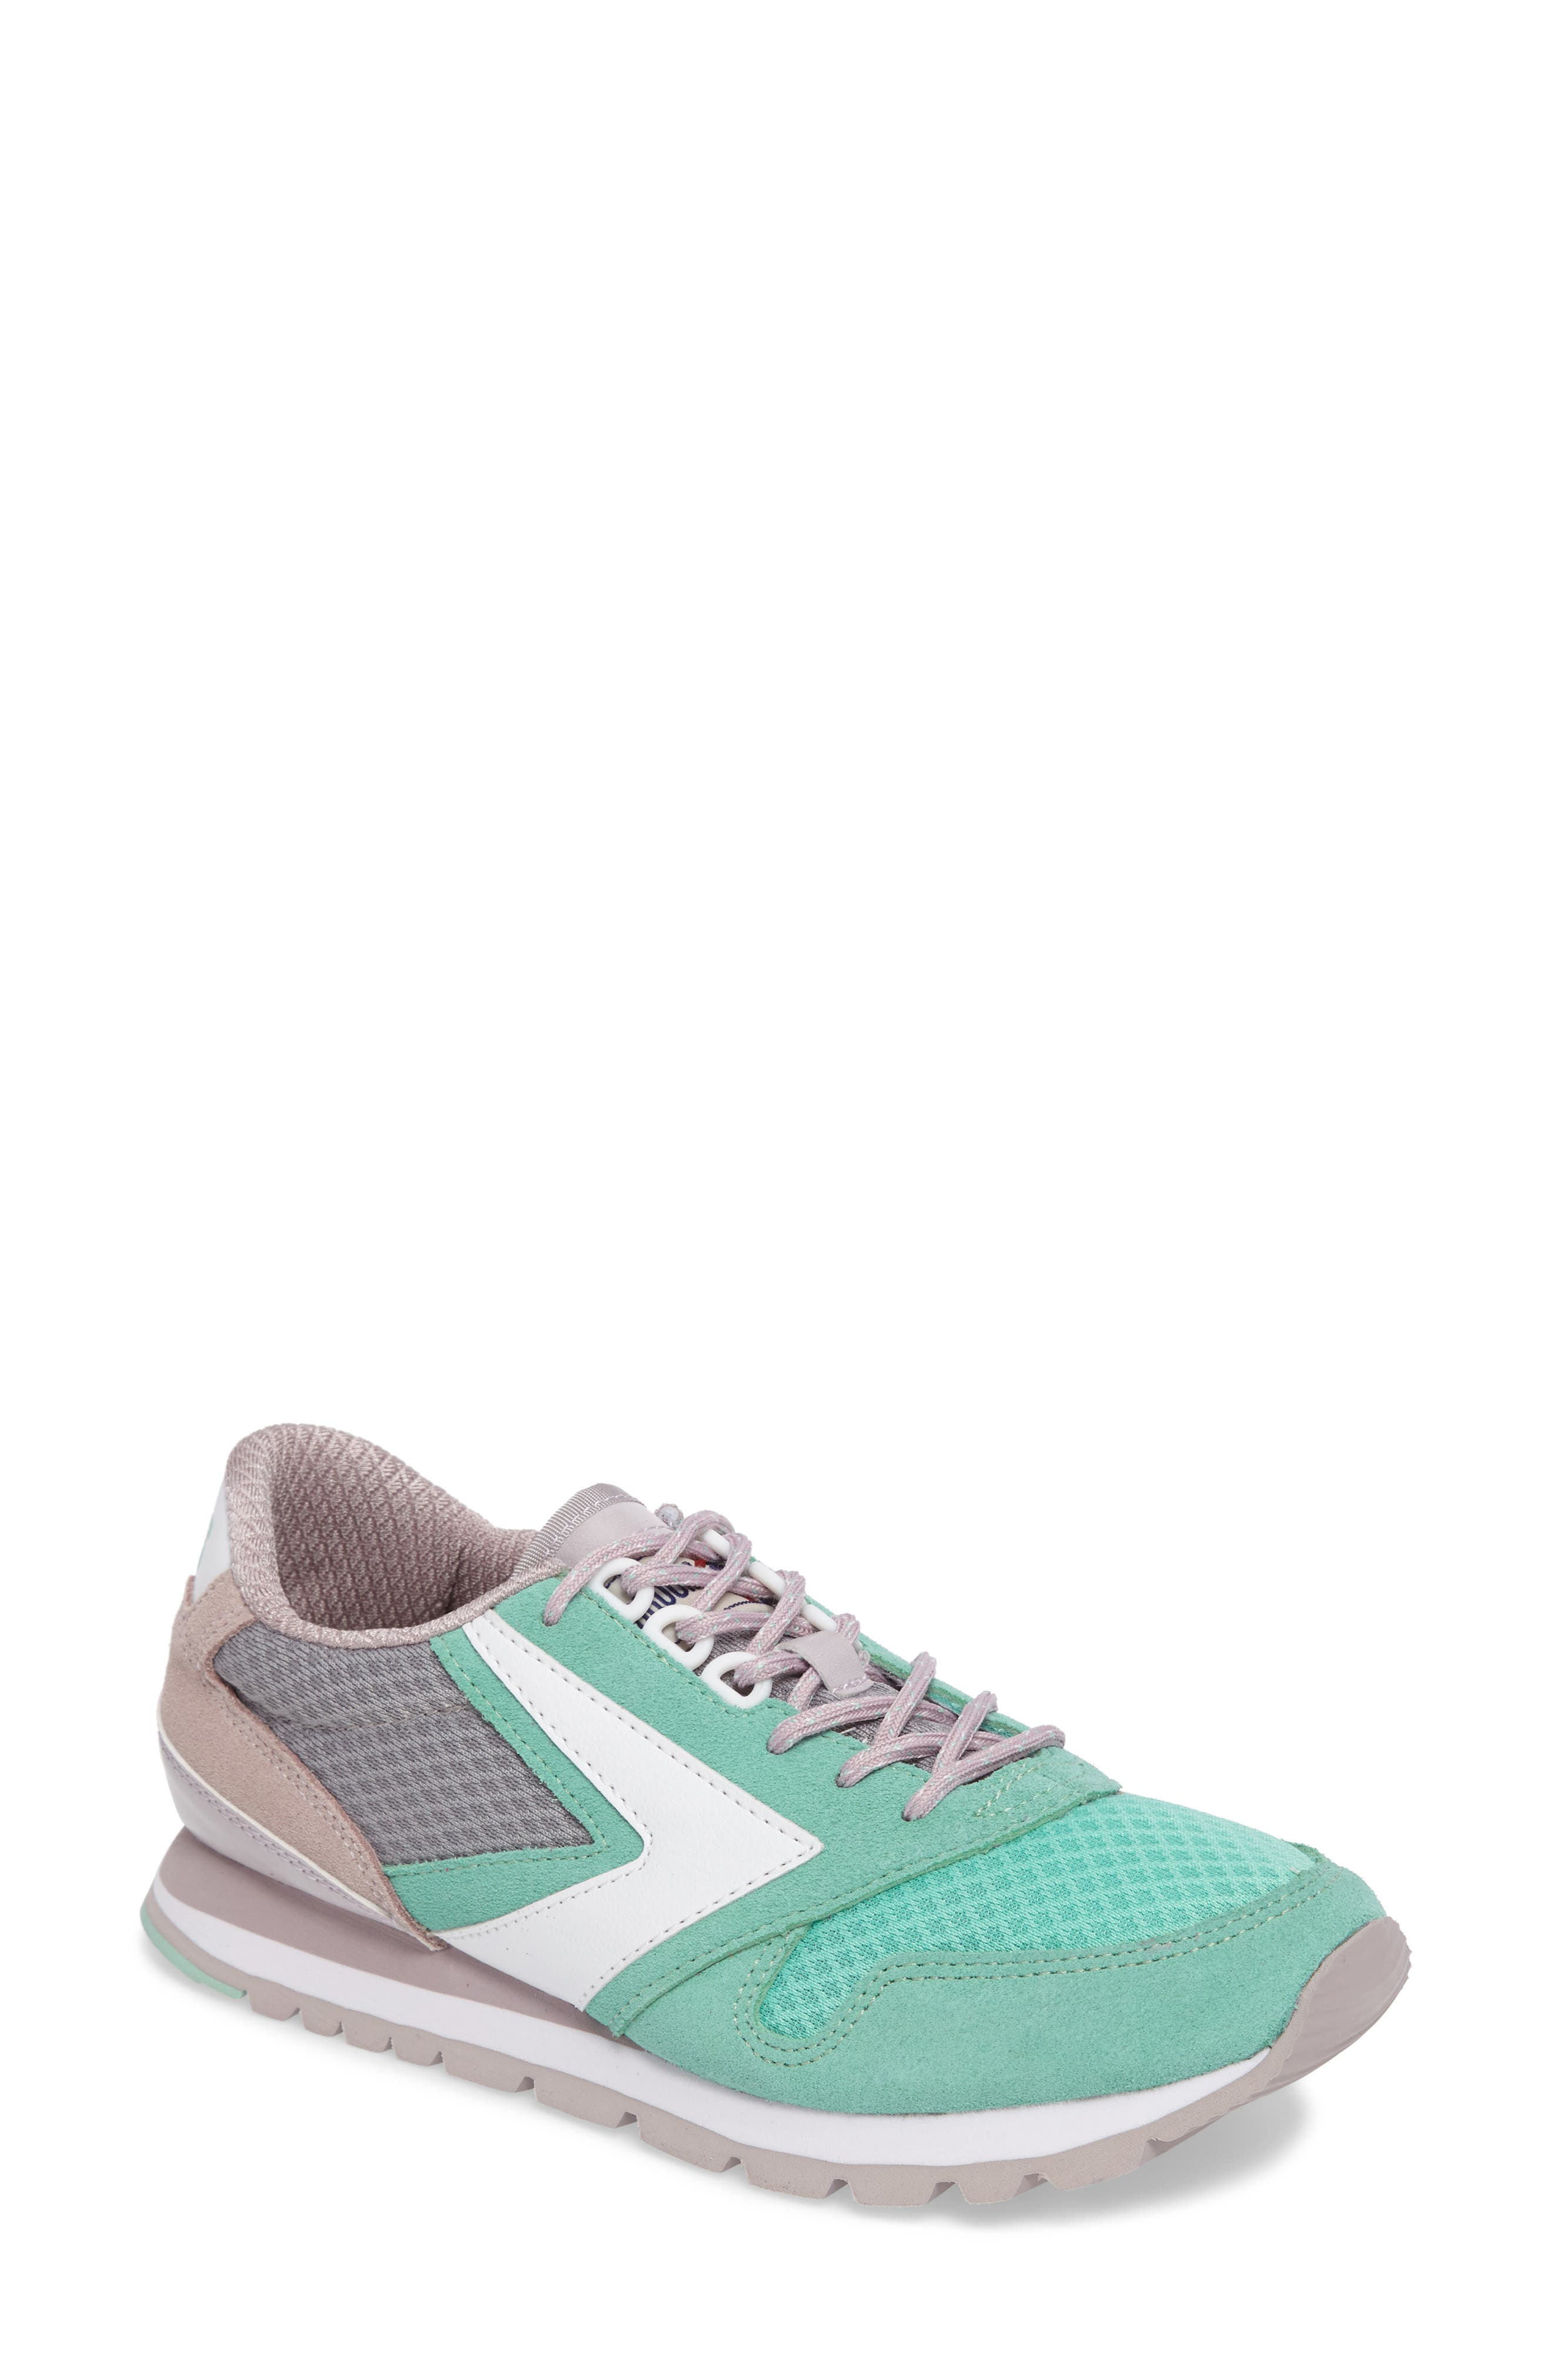 'Chariot' Sneaker,                         Main,                         color, Cloud Grey/ Cabbage